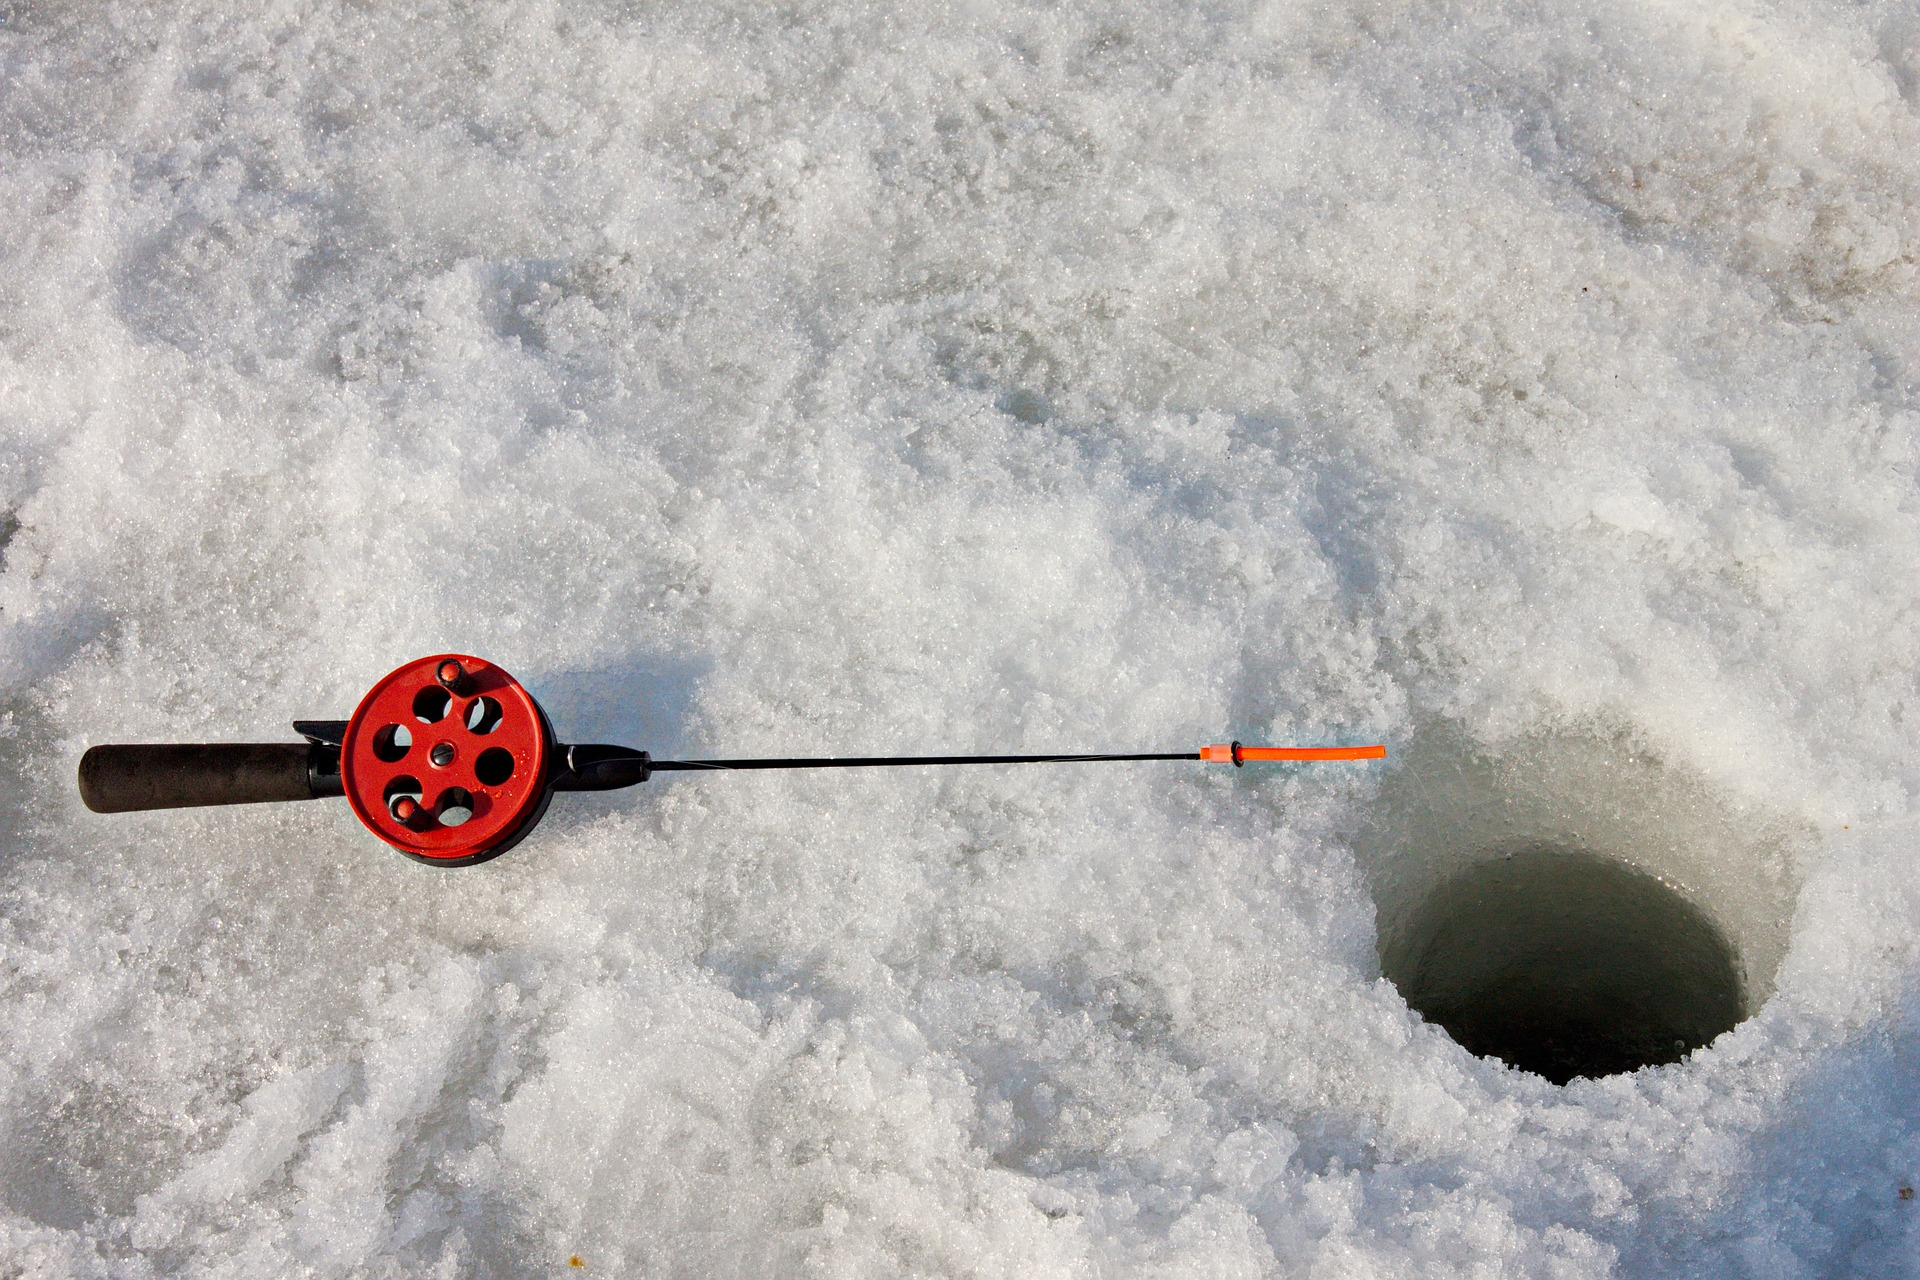 Beaverton Legion hosting another ice fishing derby